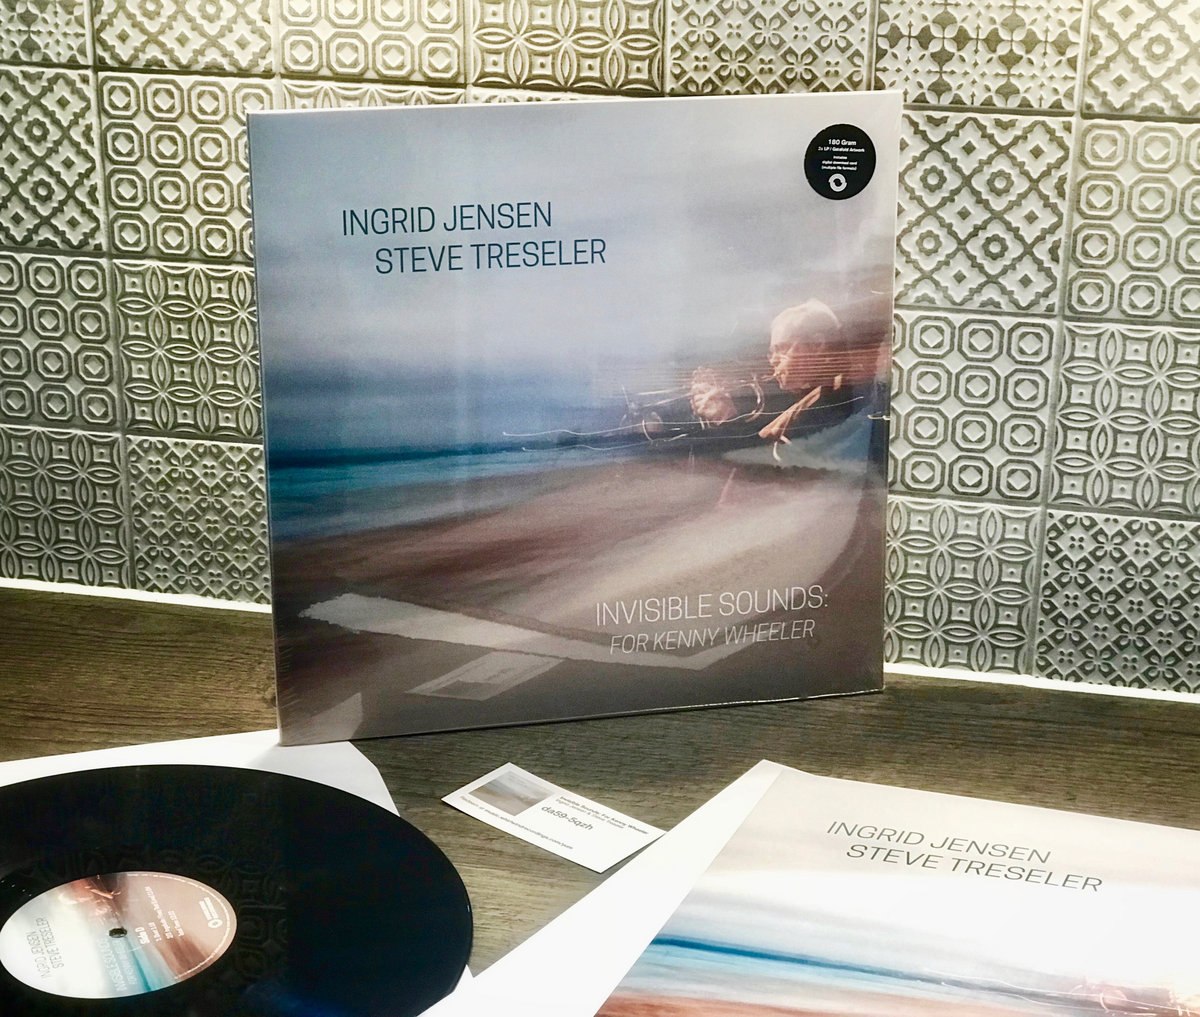 Invisible Sounds: For Kenny Wheeler | Ingrid Jensen & Steve Treseler